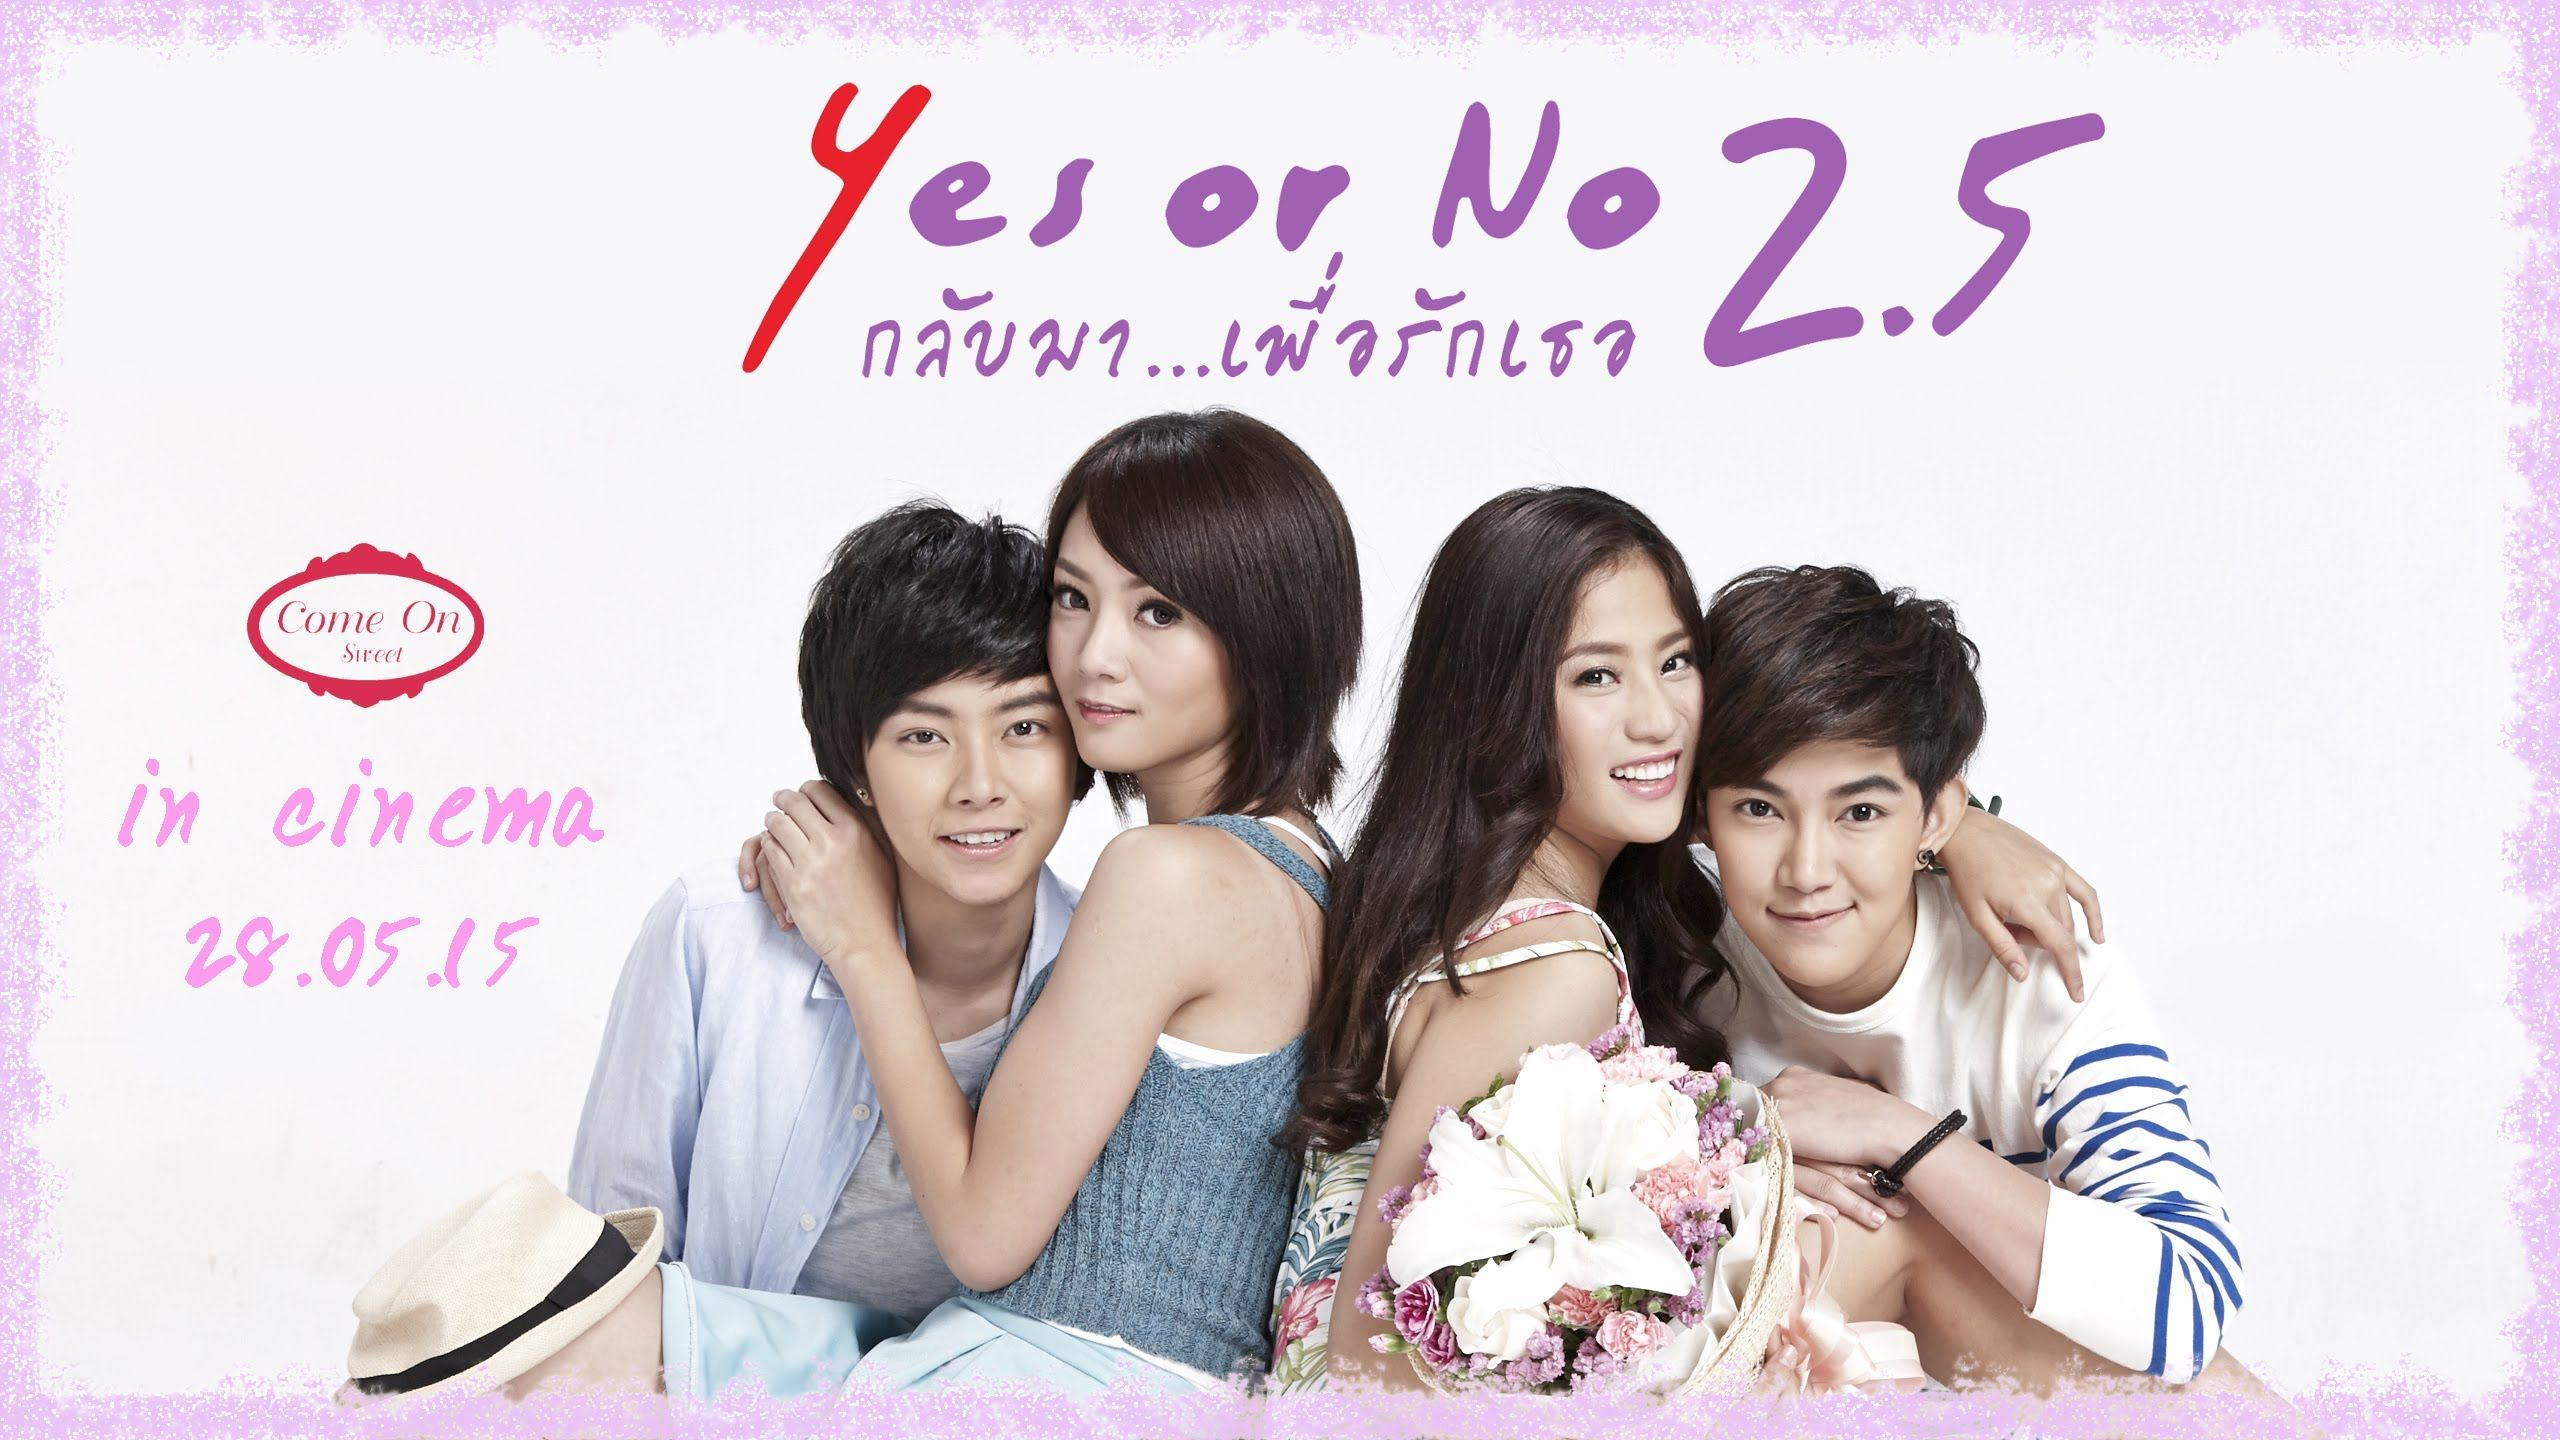 Yes Or No 2 5 Thailand Les Movie Eng Sub Cute Love Stories Youtube Love Story